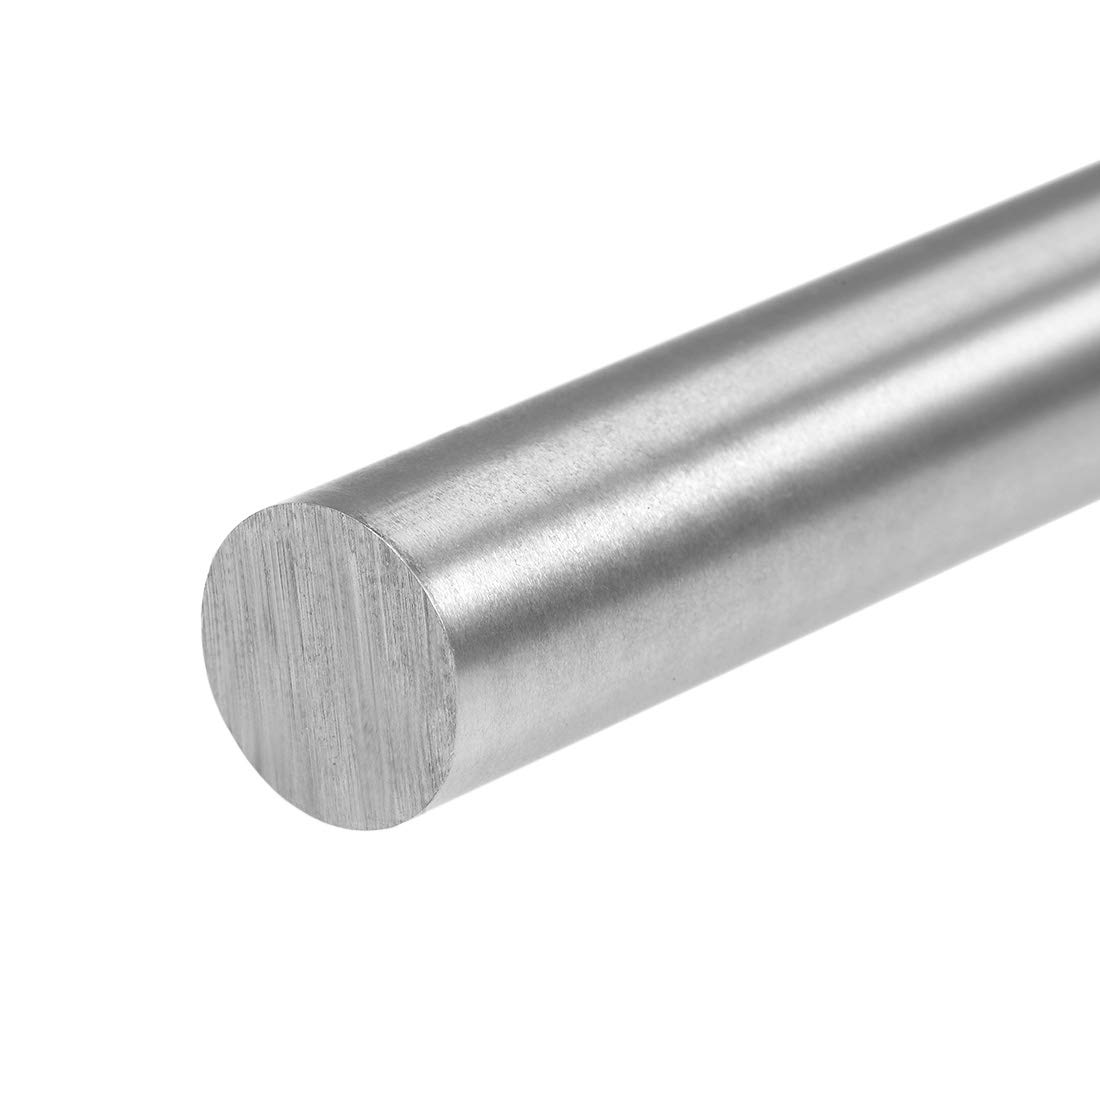 uxcell HSS Lathe Round Rod Solid Shaft Bar 13mm Dia 150mm Length